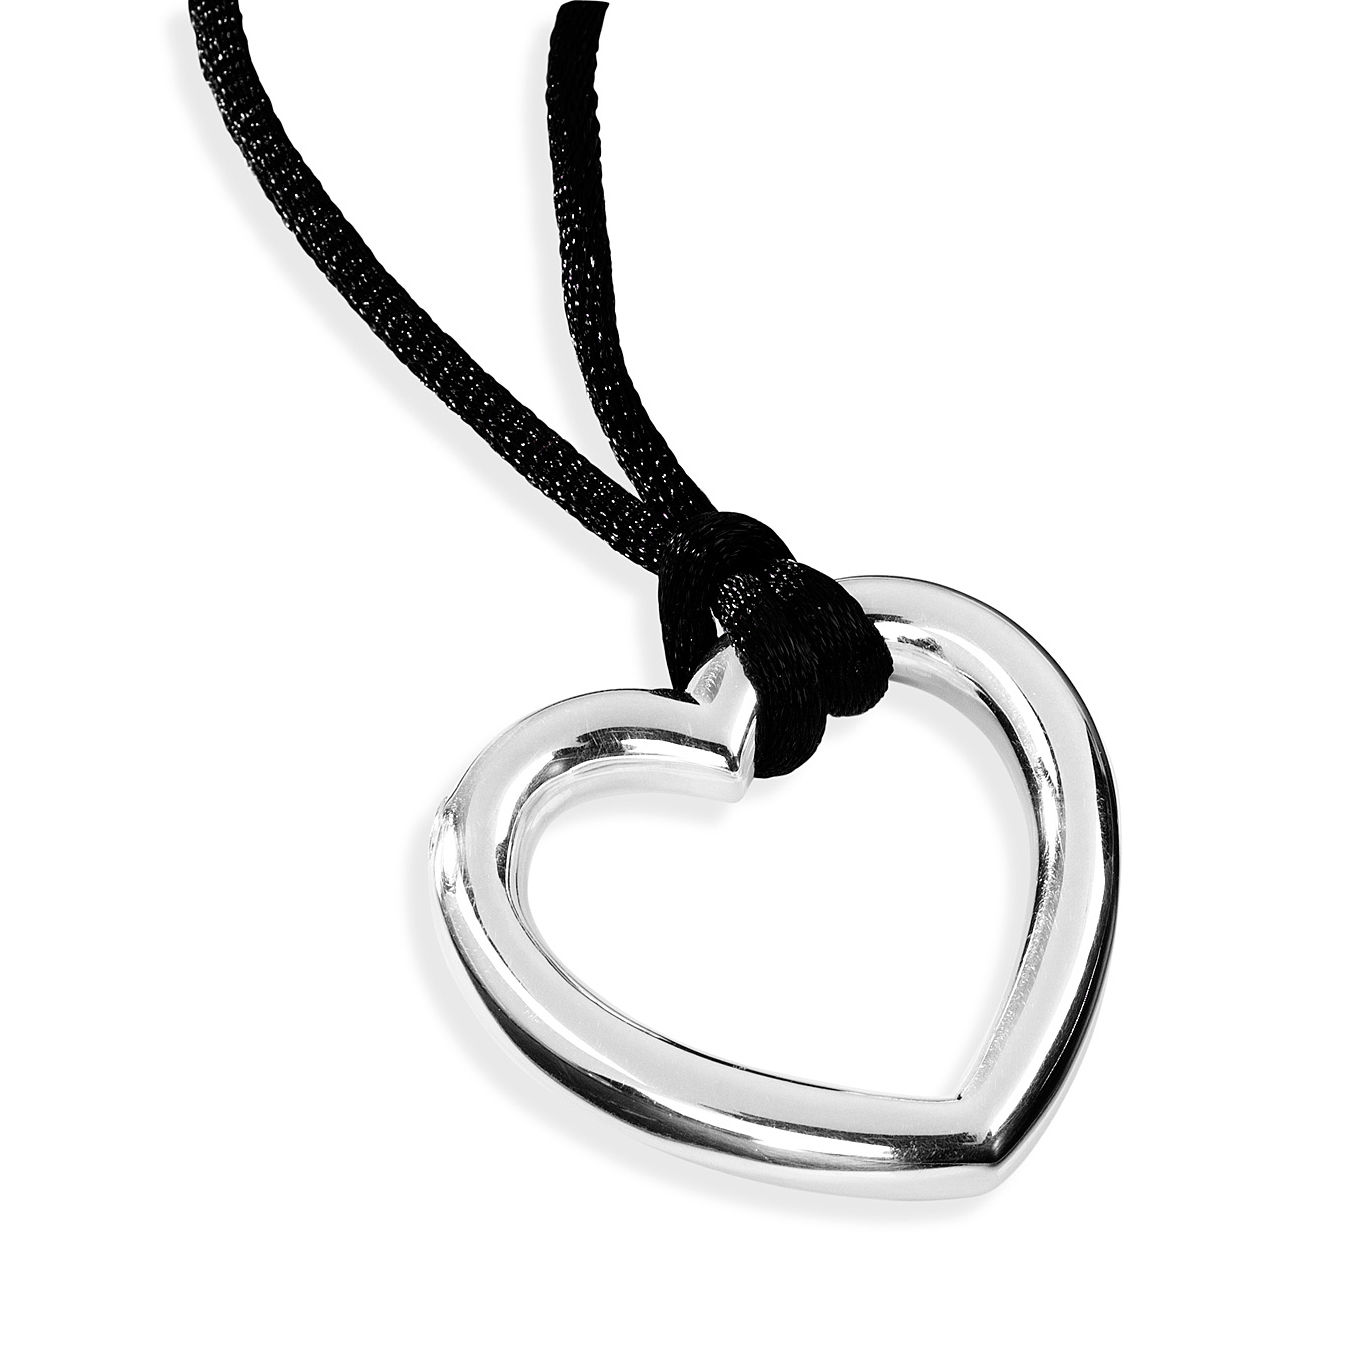 Open Heart Cremation Pendant Sterling Silver Keepsake Necklace - TM Keepsake | Treasured Memories Cremation Jewelry